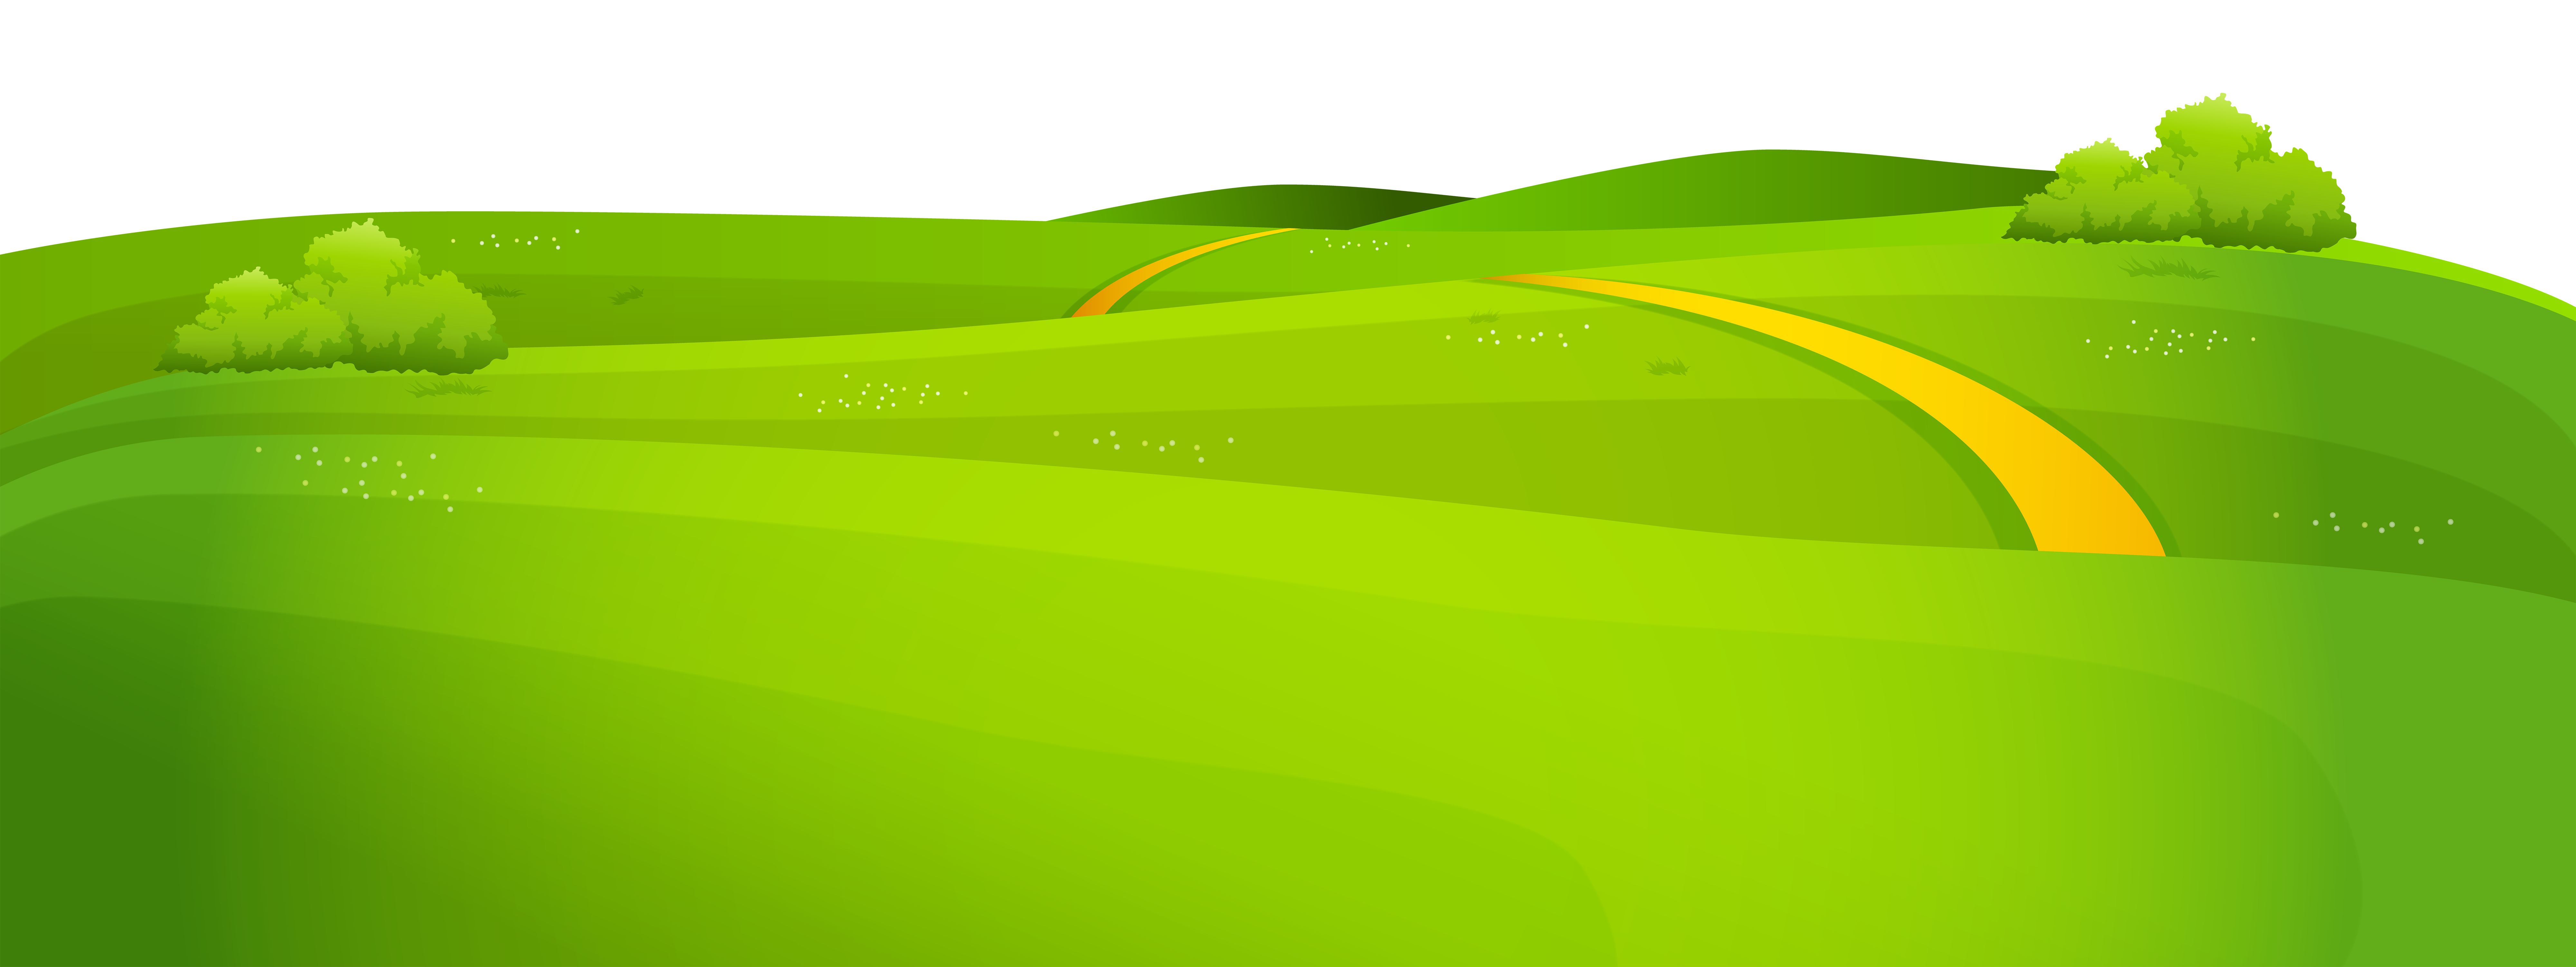 Ground clipart land, Ground land Transparent FREE for.